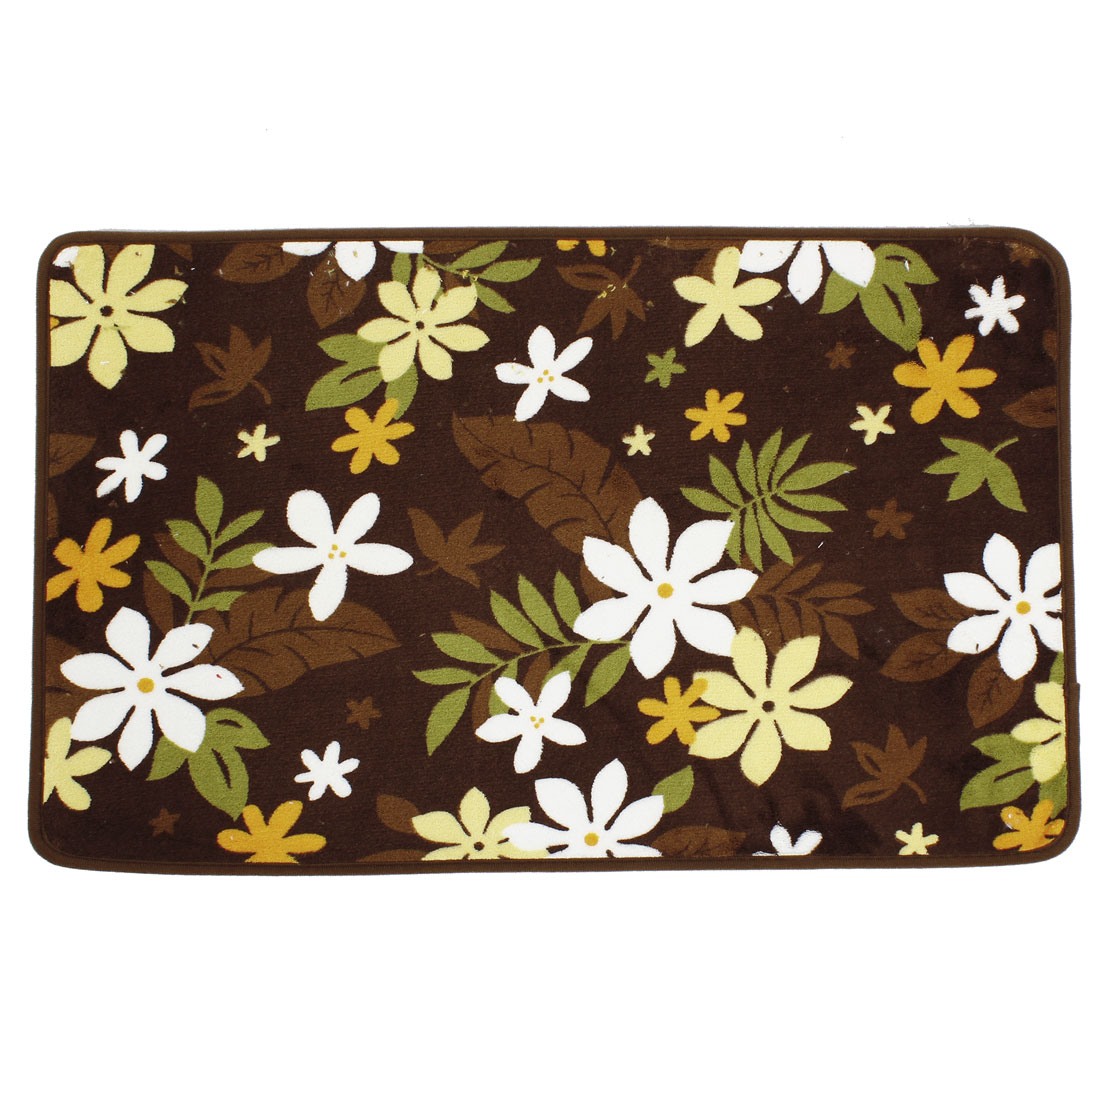 Coffee Color Flowers Leaves Patetrn Antislip Area Rug Carpet 70cm x 45cm